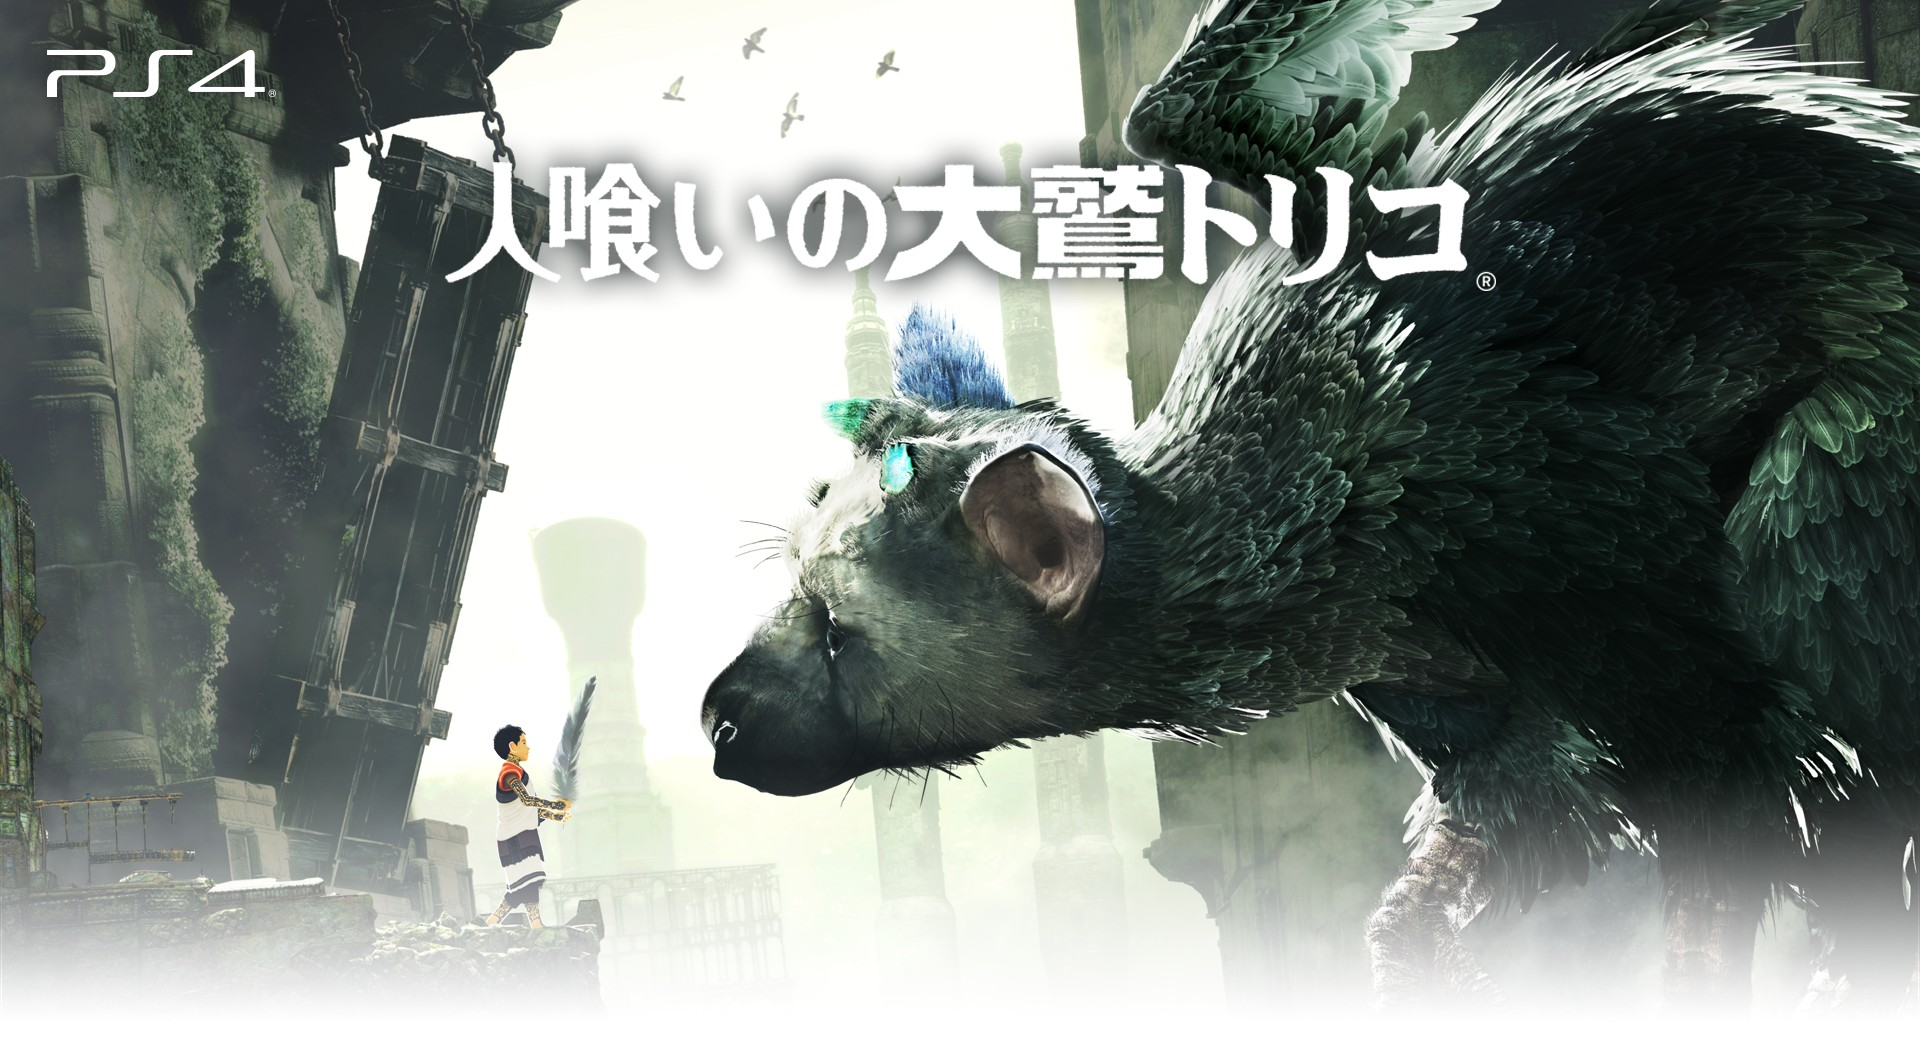 http://sce.scene7.com/is/image/playstation/dam-trico-main-hd